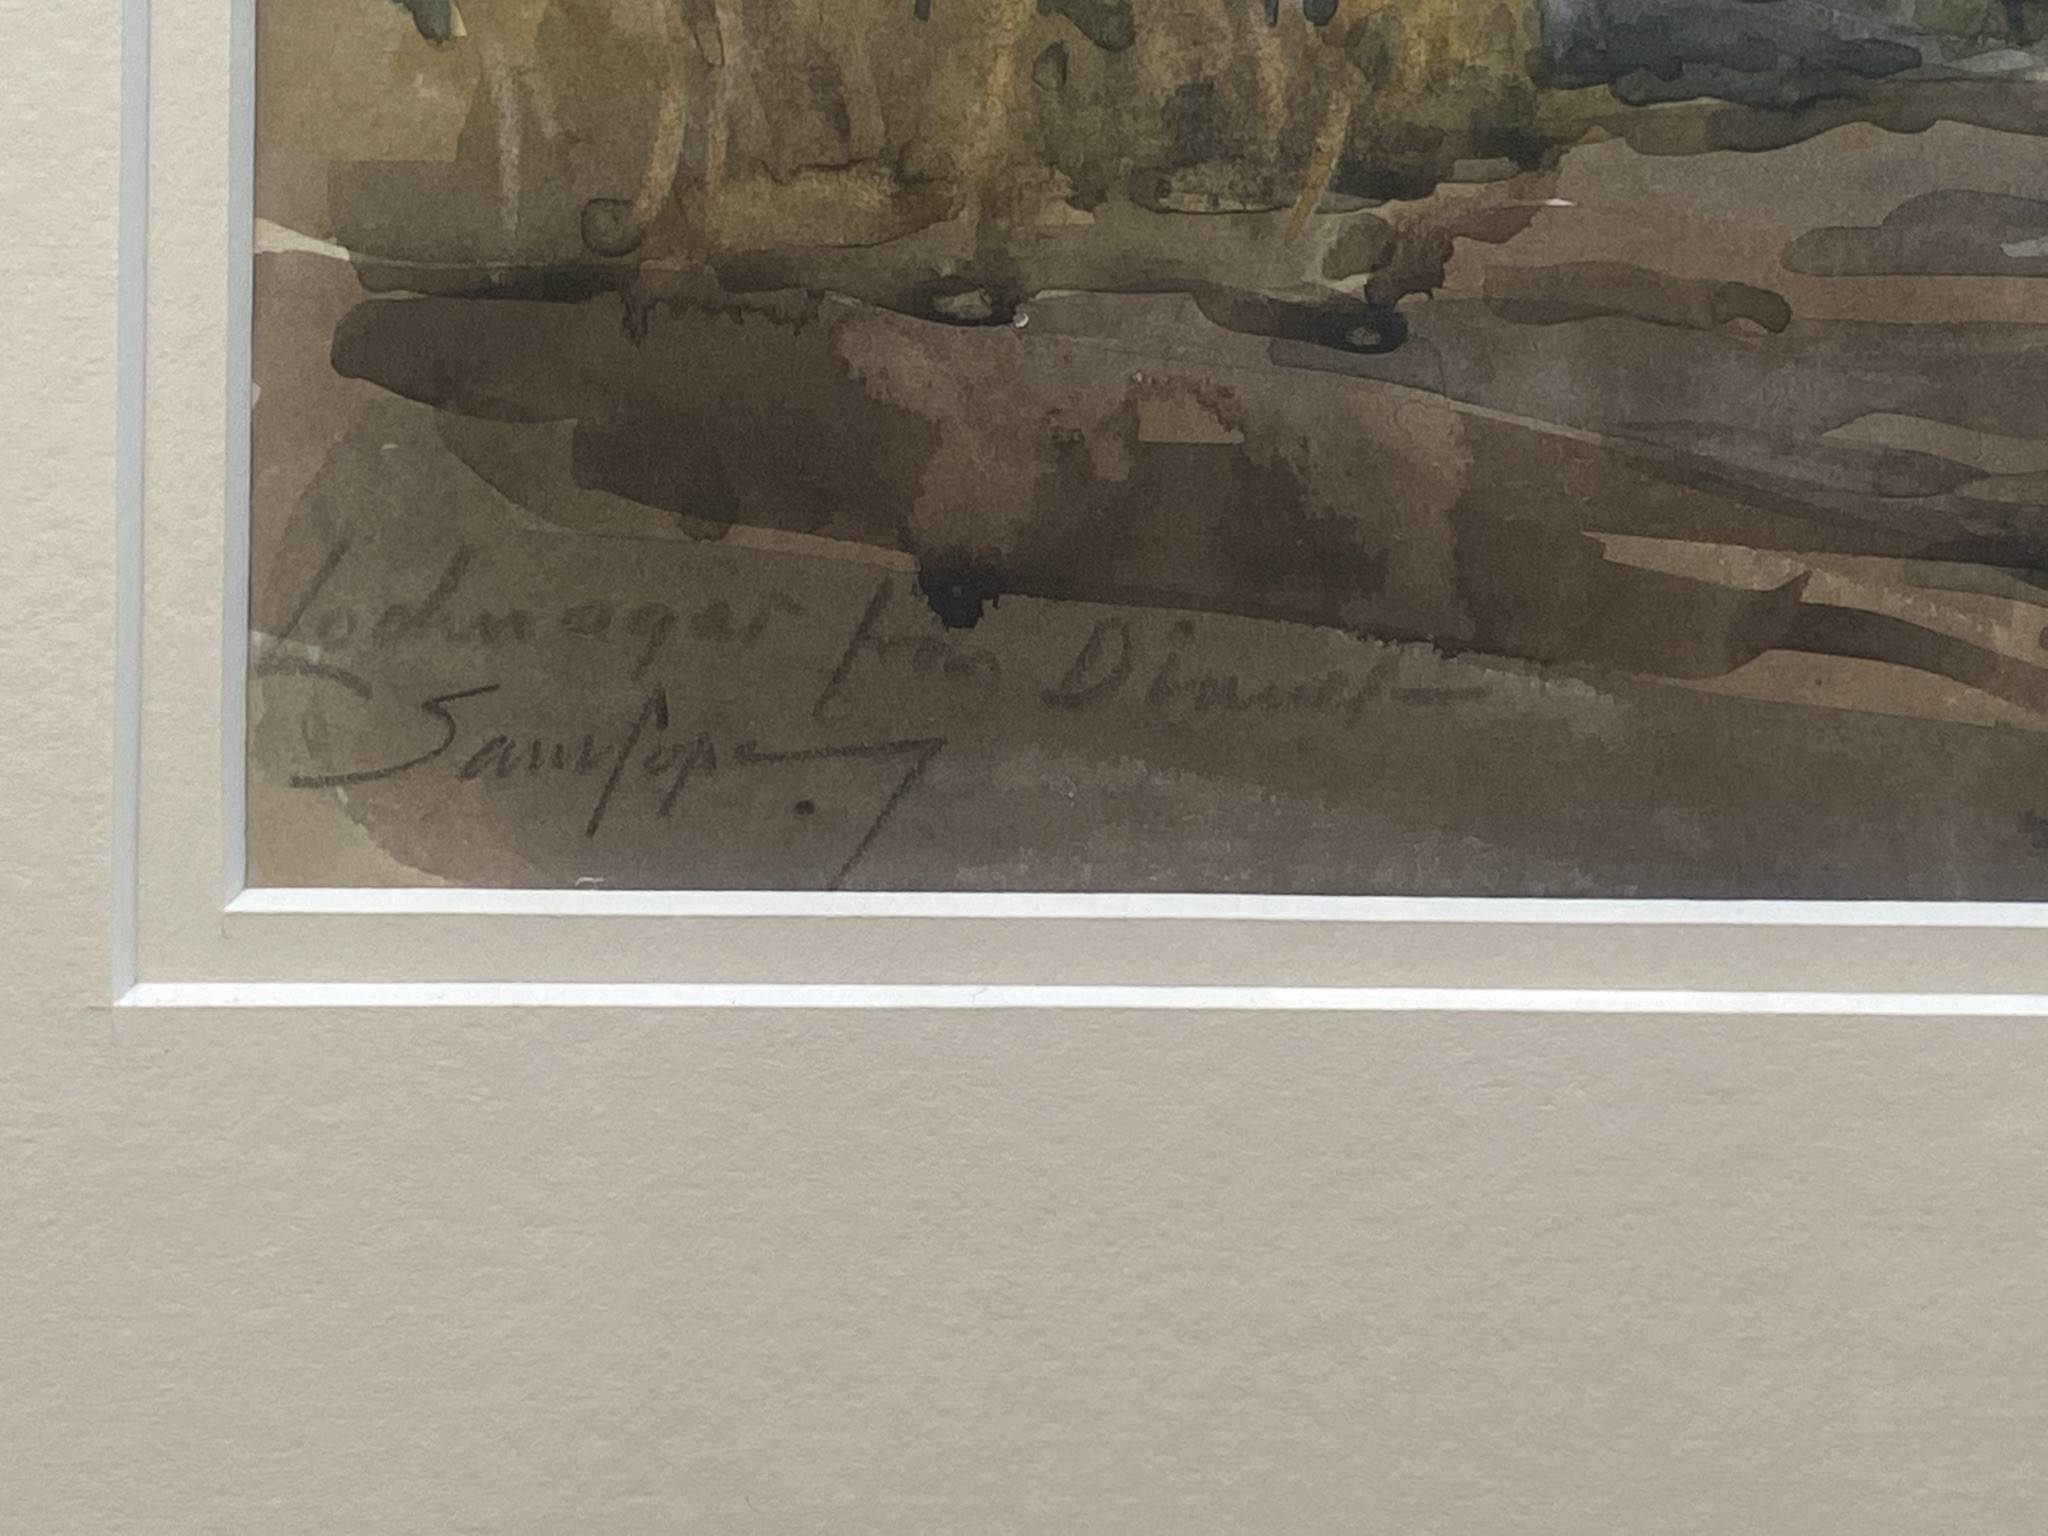 """Samuel Pope (British, active 1896-1940) signed watercolour """"Loch Na'Gar"""" - Image 3 of 3"""